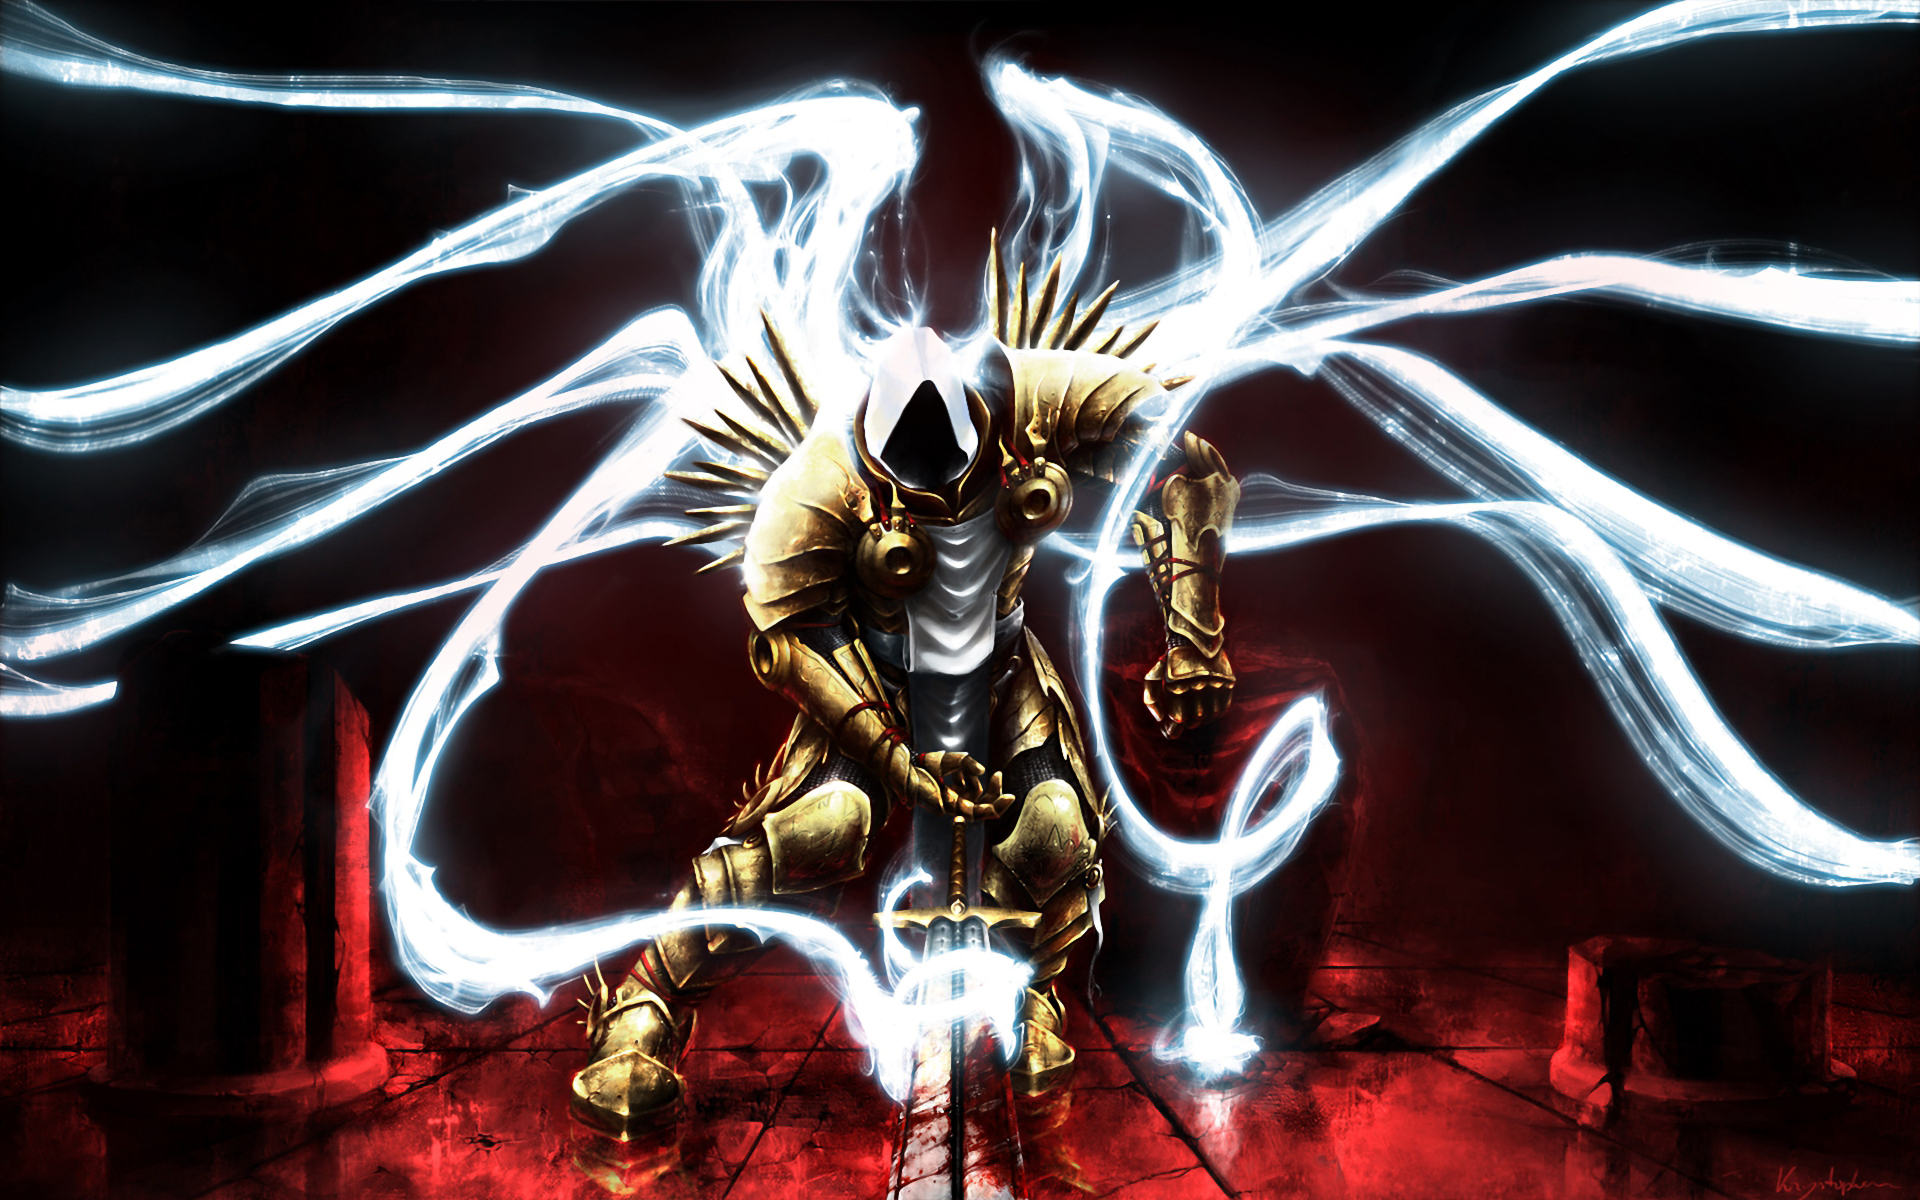 Winged warrior knight